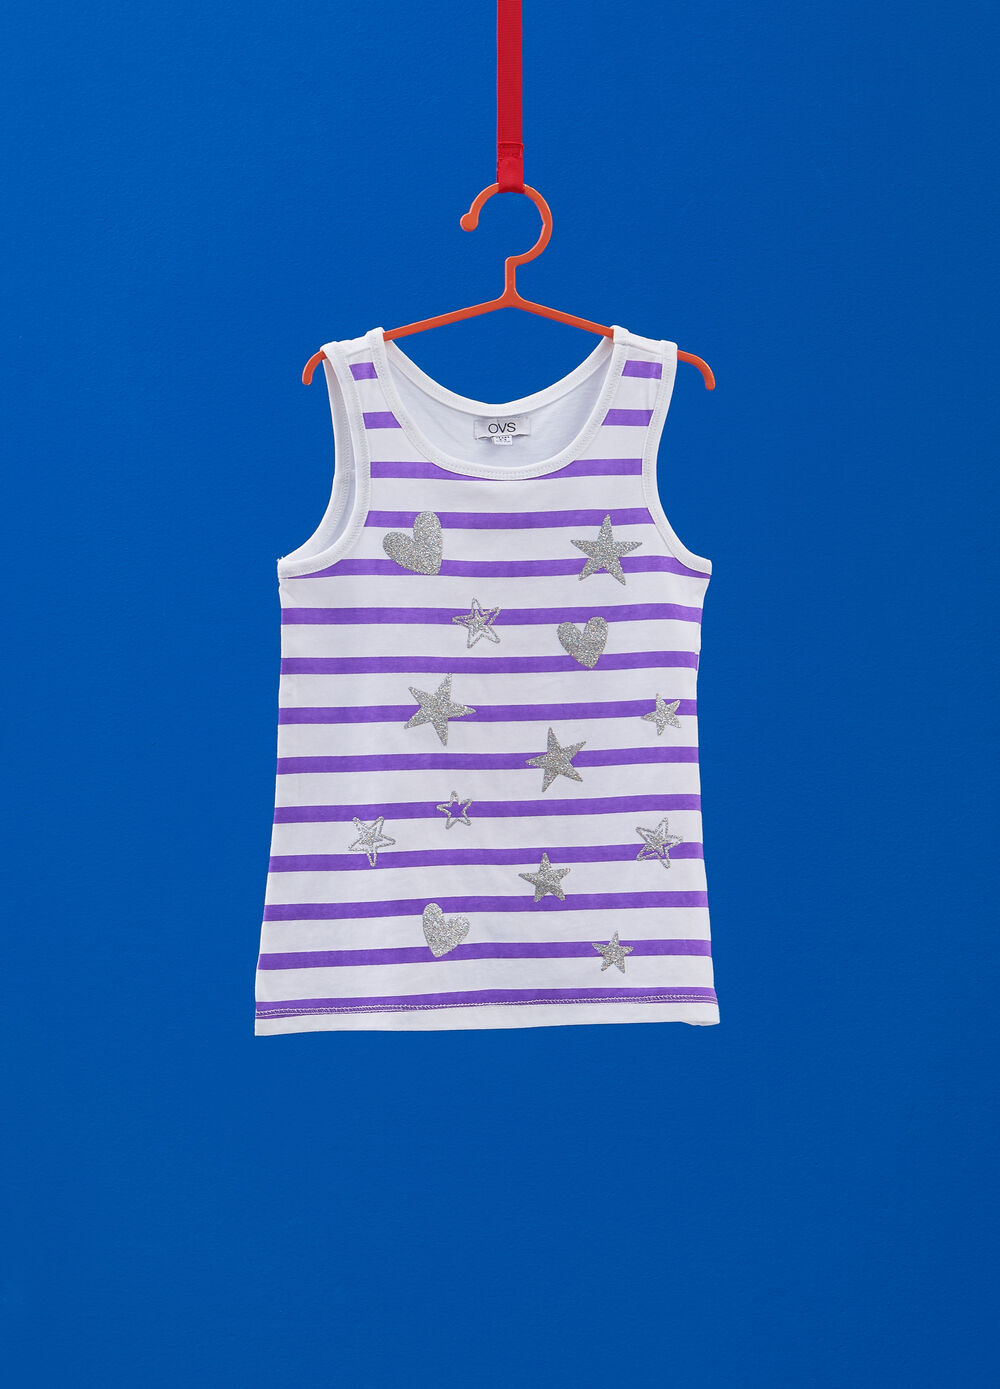 100% cotton striped top with hearts and stars